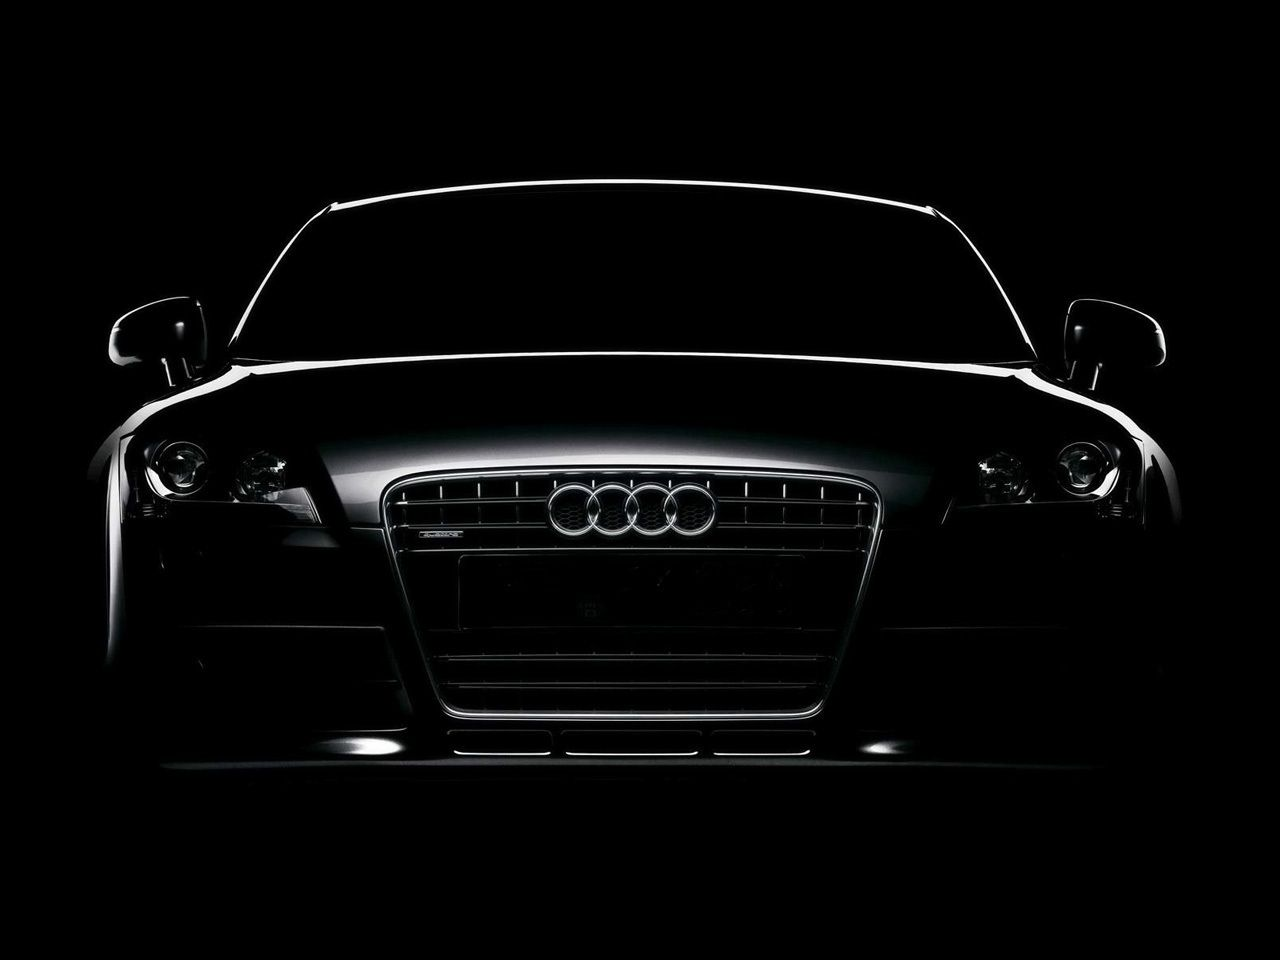 Audi TT auto body shop tampa florida guys automoti